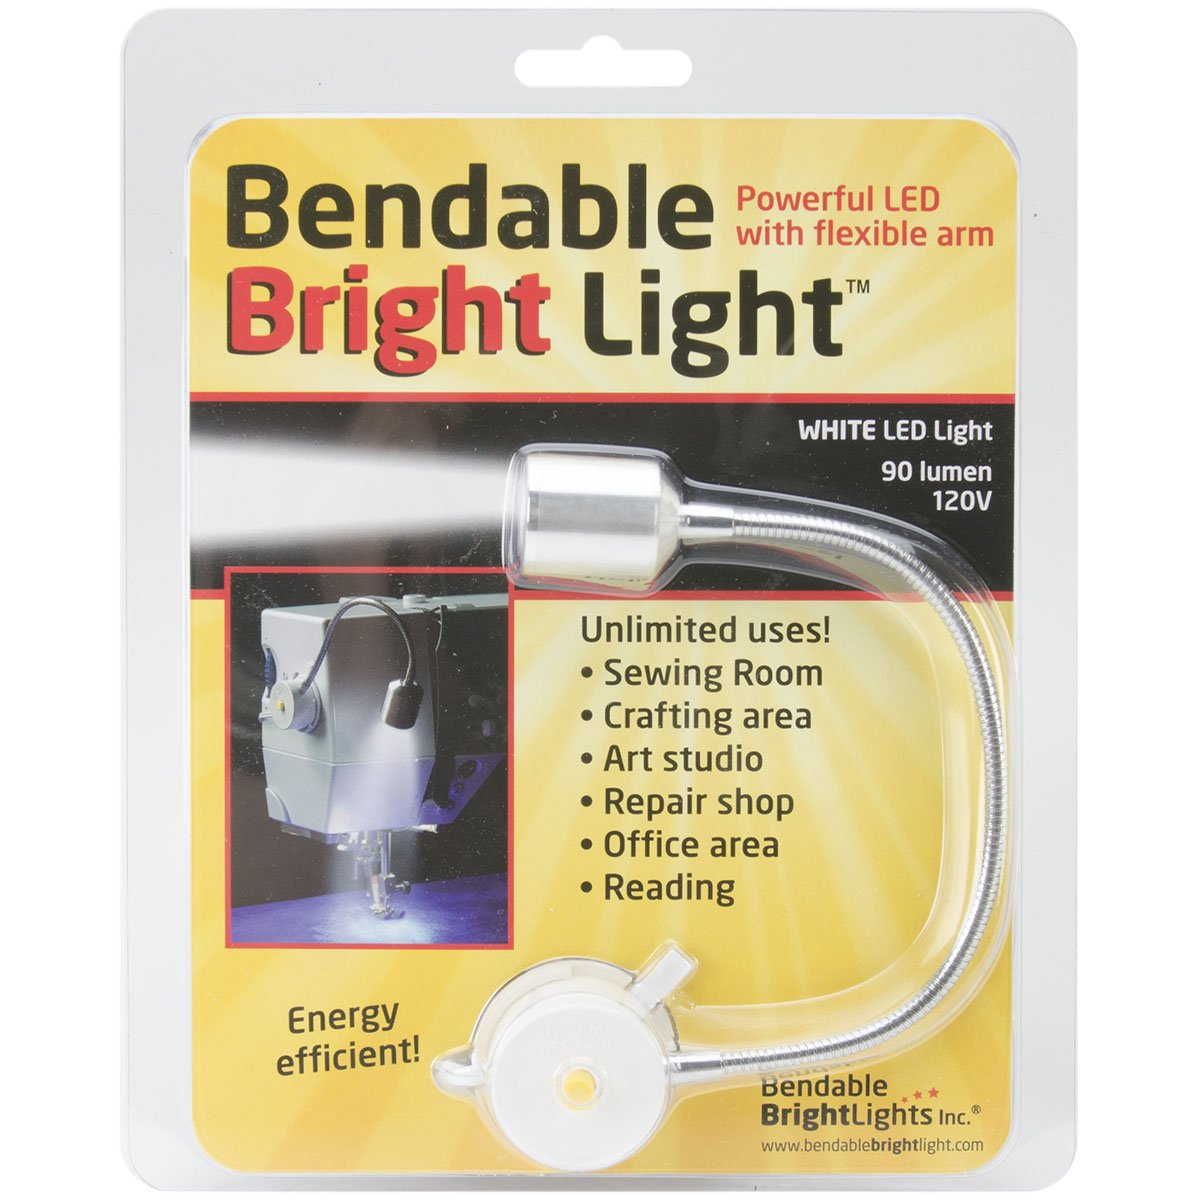 Bendable Bright Lights Kit by Bendable Bright Lights